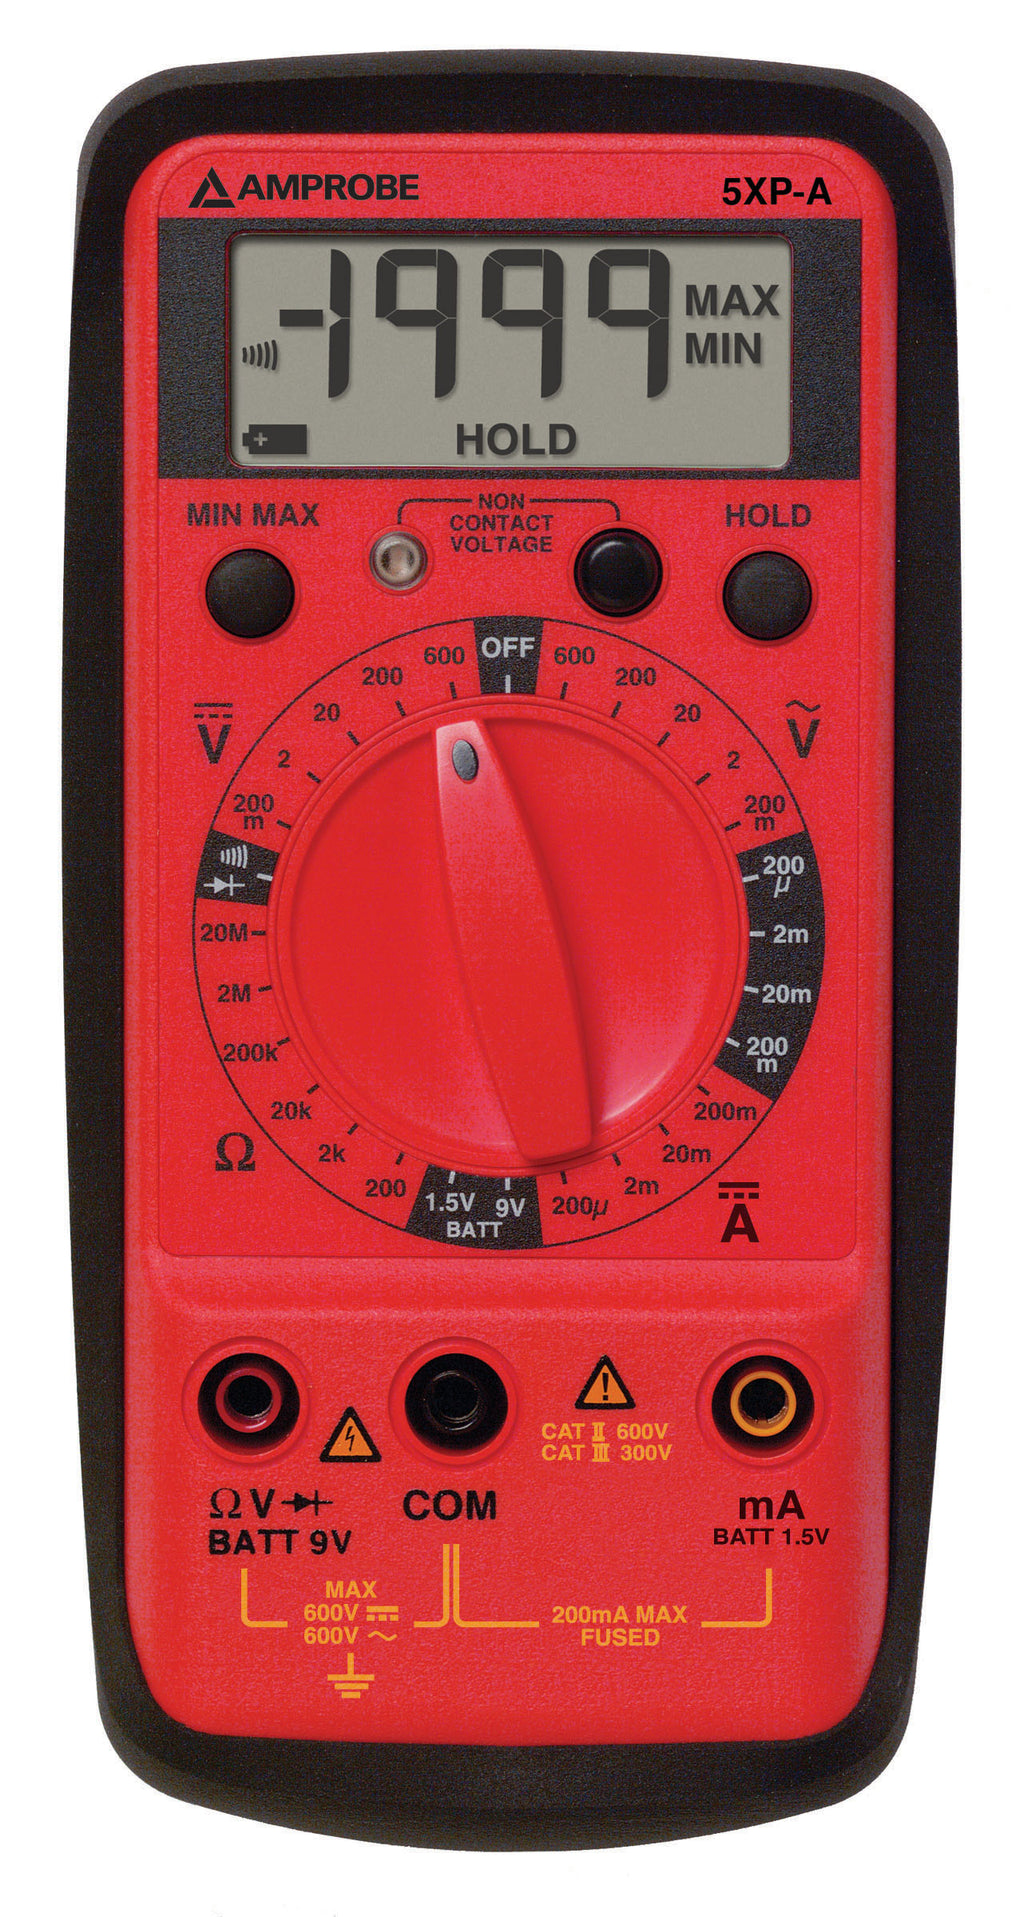 Amprobe 5XP-A AC/DC Compact Digital Multimeter with VolTect™